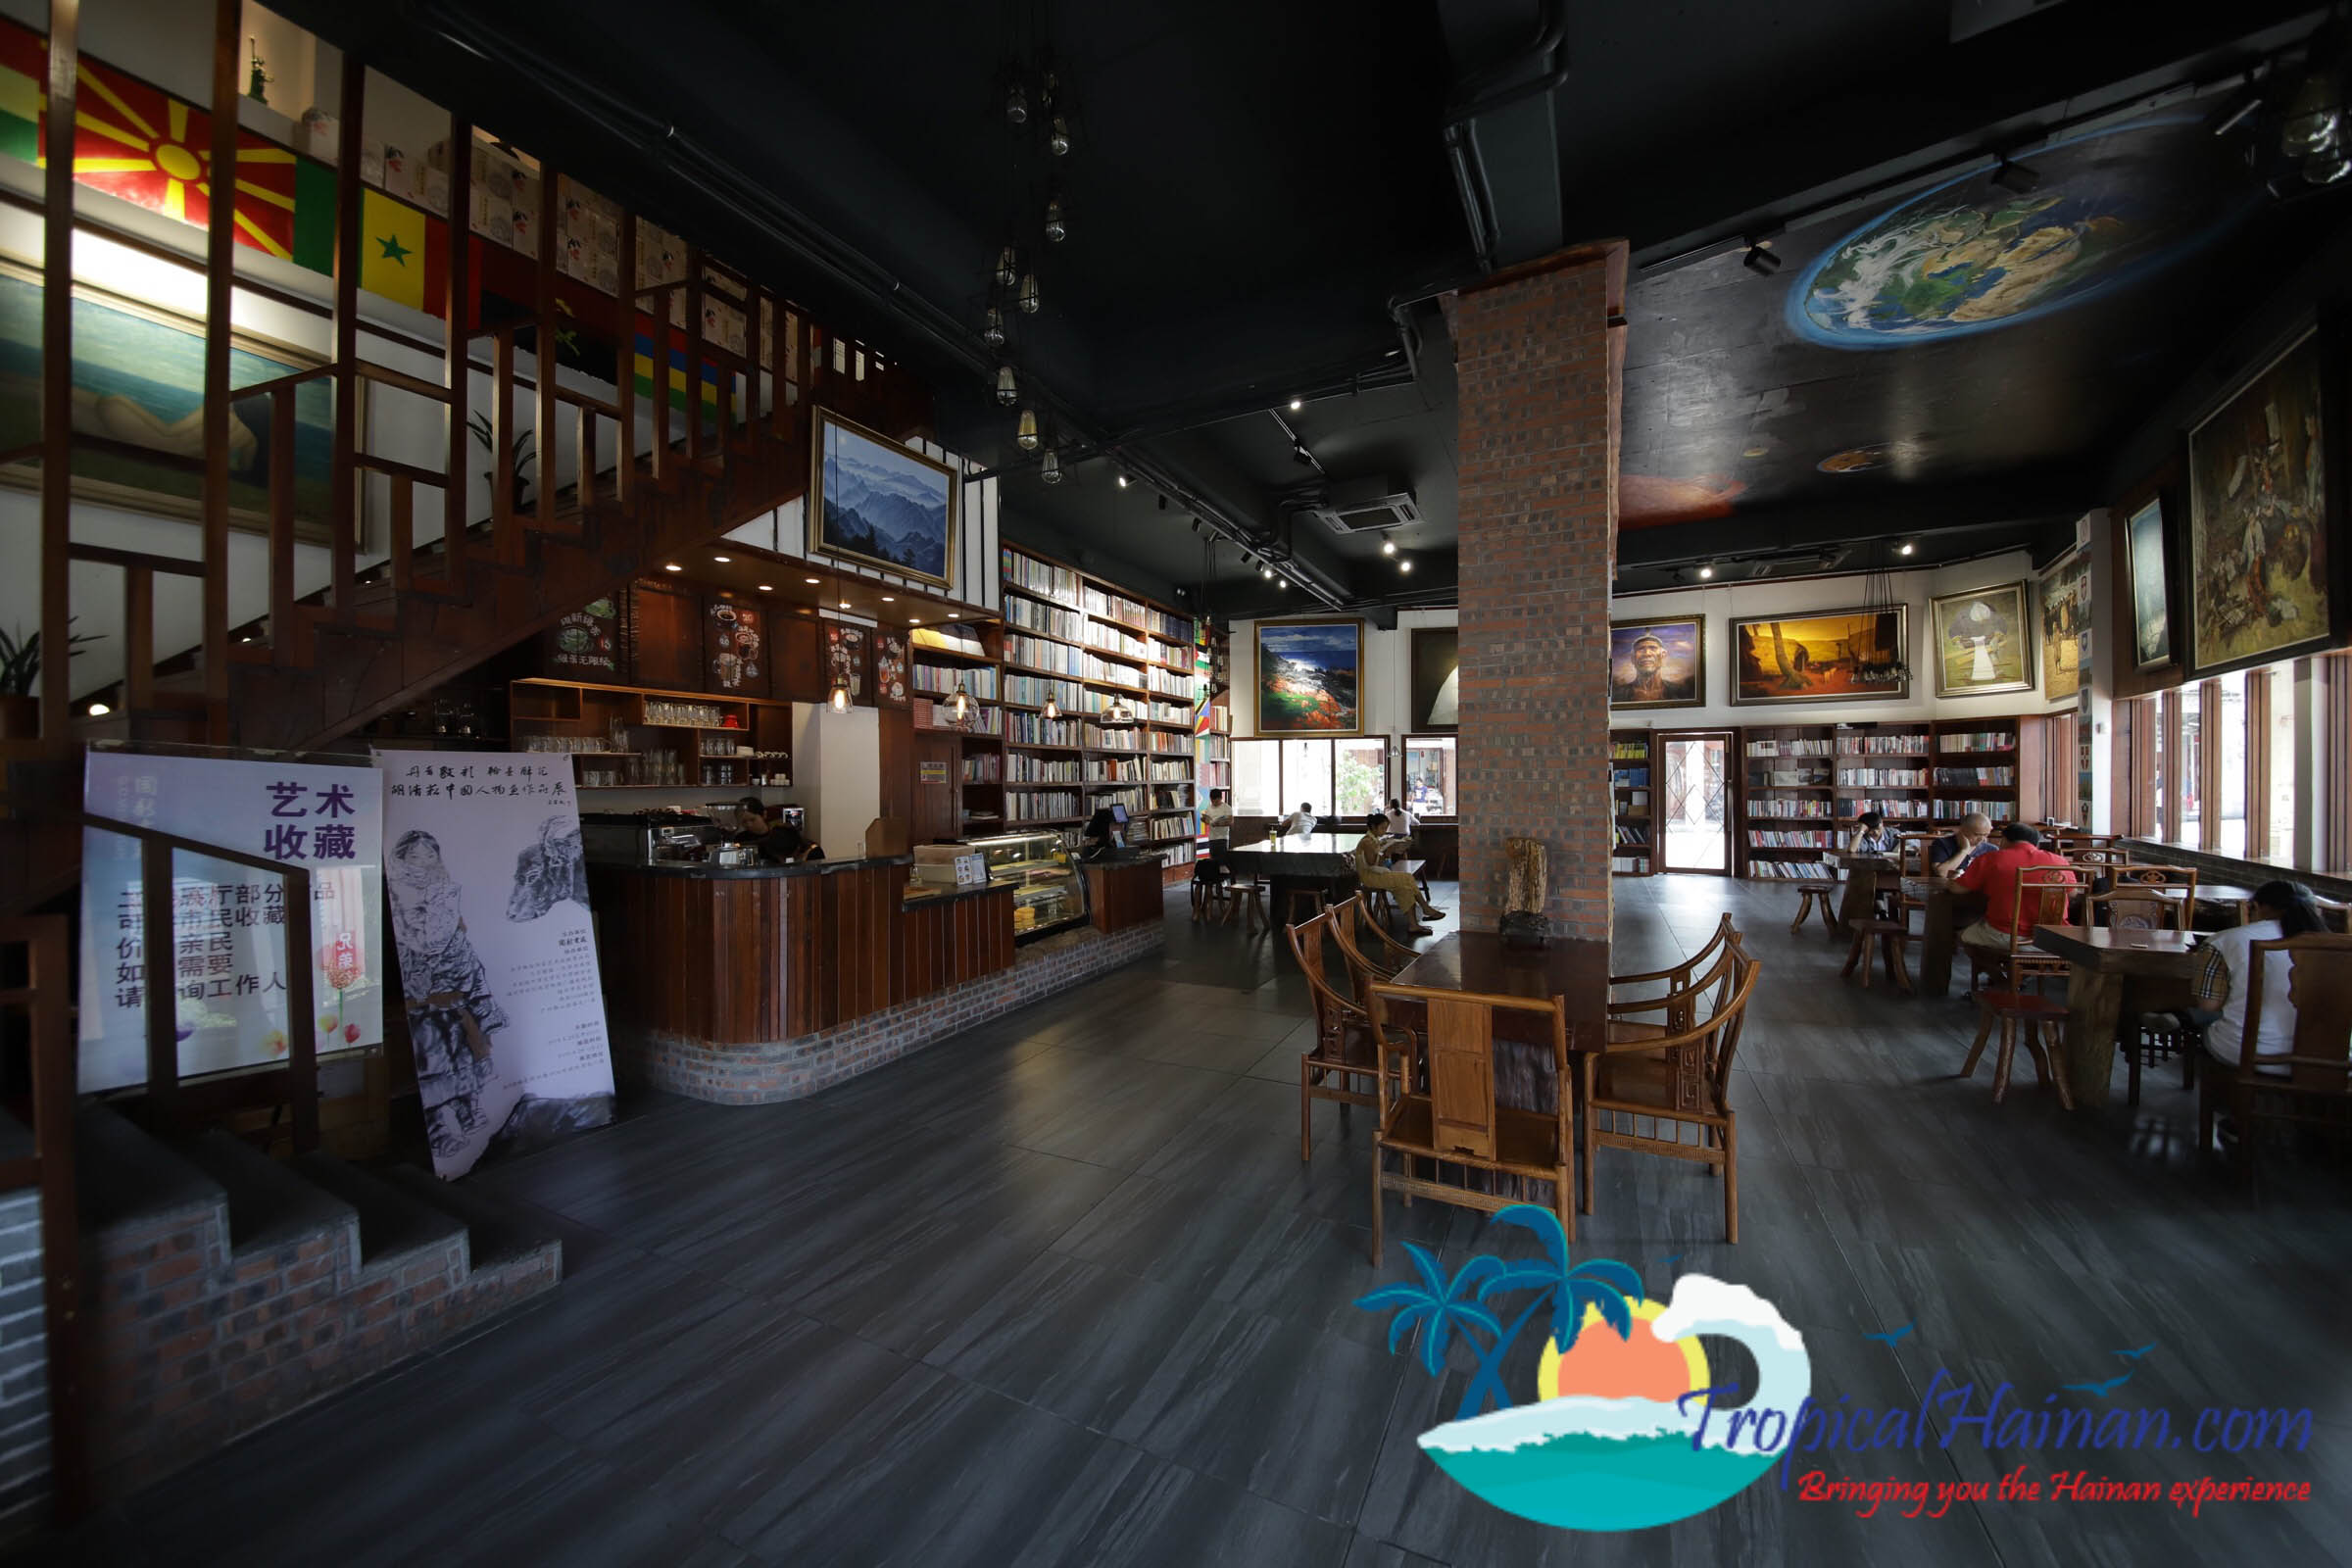 Qilou Coffee shop art gallery and book store Haikou Hainan Island China (2 of 9)